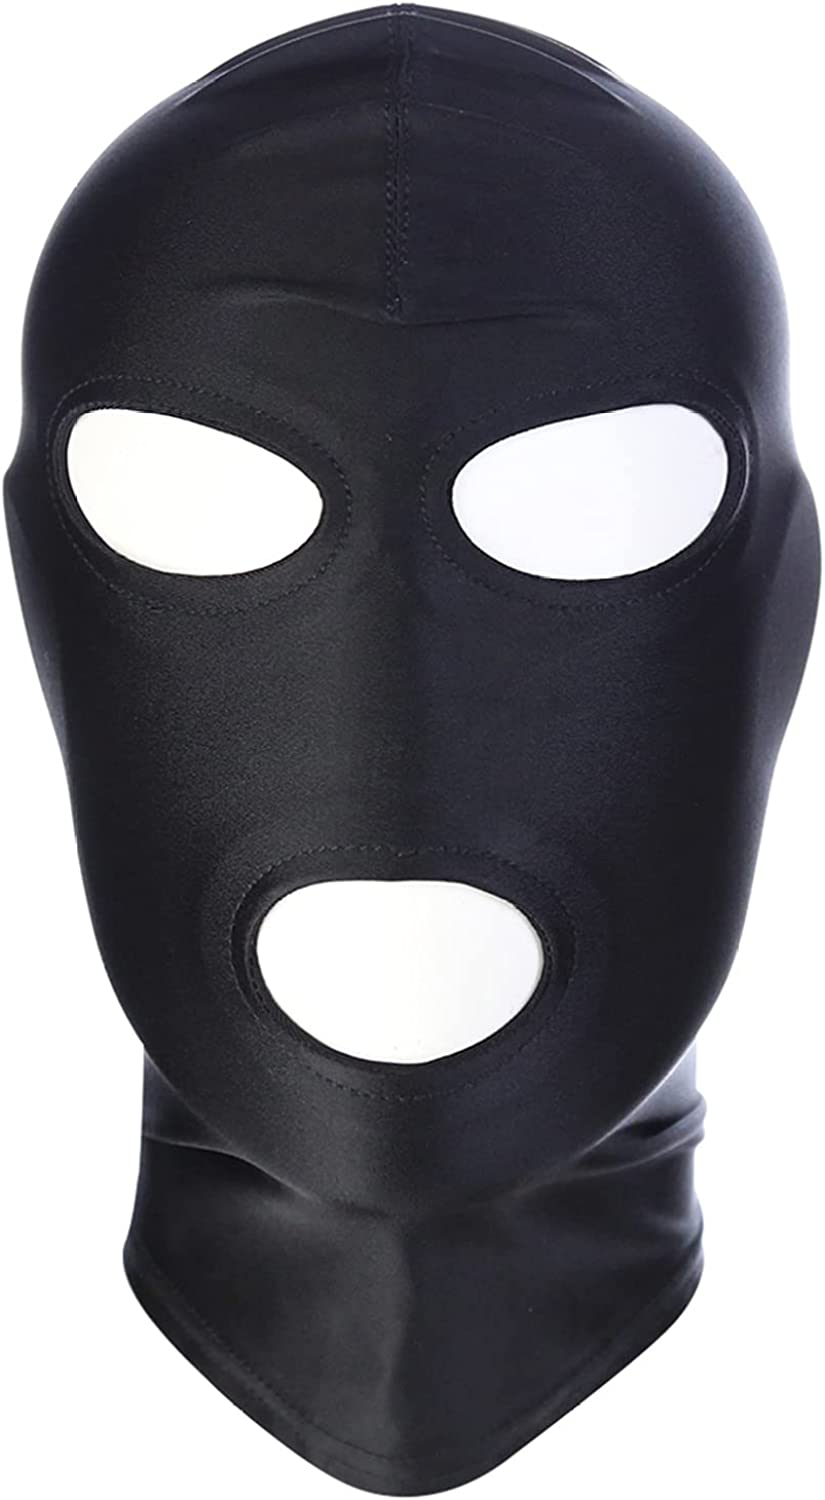 YONGHS Unisex Super-cheap Spandex Blindfold Head Popular brand in the world Mask Eye Mouth Open Face Ho